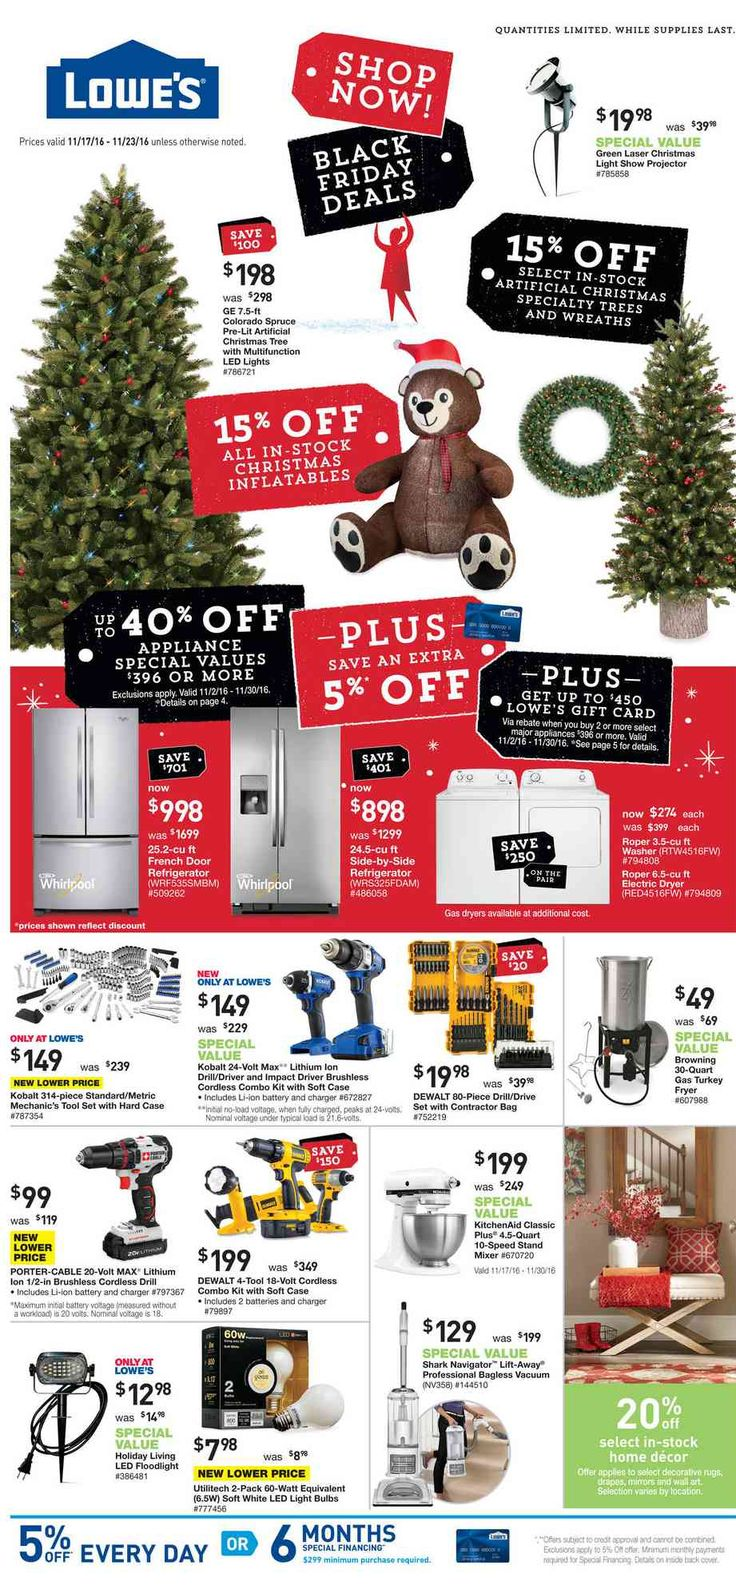 Lowe's Weekly Ad November 17 - 23, 2016 - http://www.olcatalog.com/home-garden/lowes-weekly-ad.html